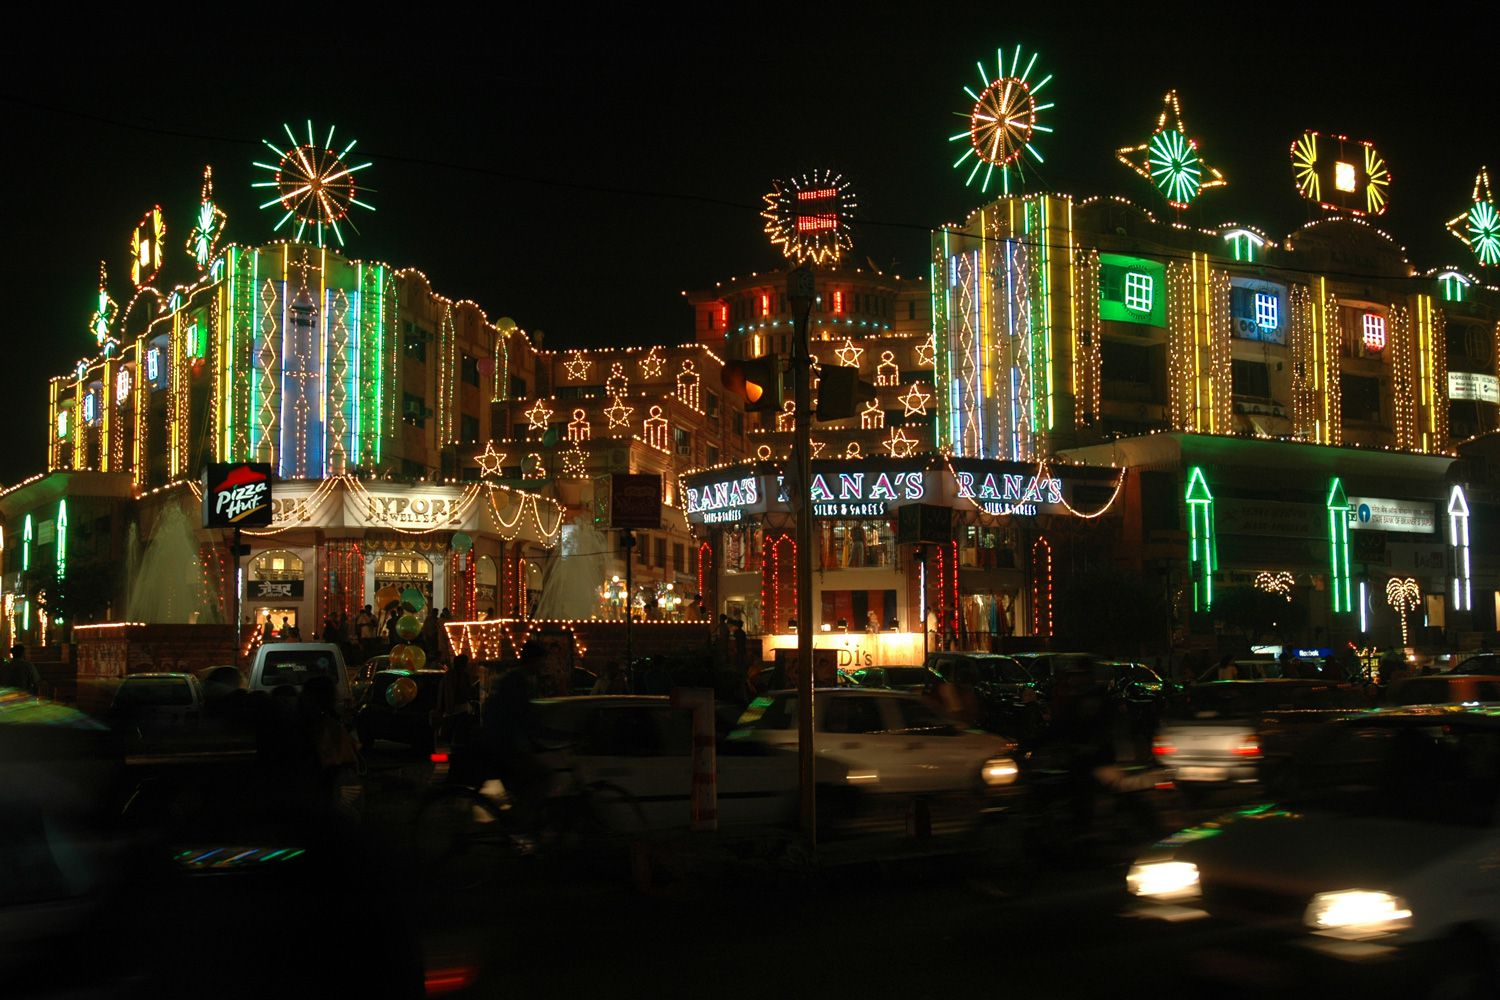 diwali in india 9 diverse ways and places to celebrate